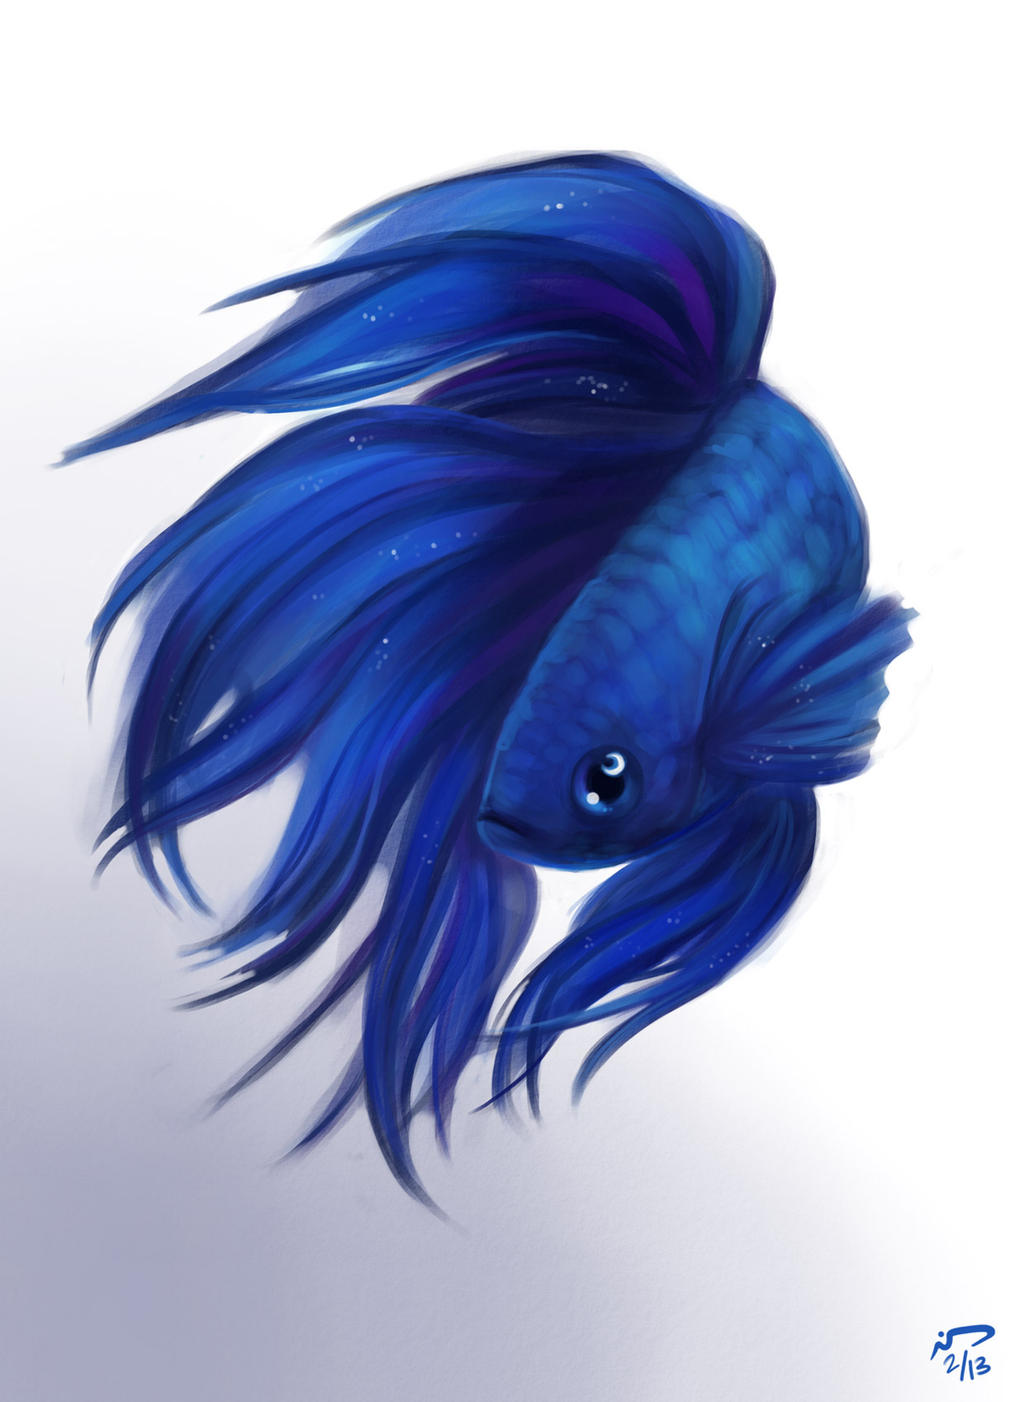 Moon betta by majoh on deviantart for Betta fish painting